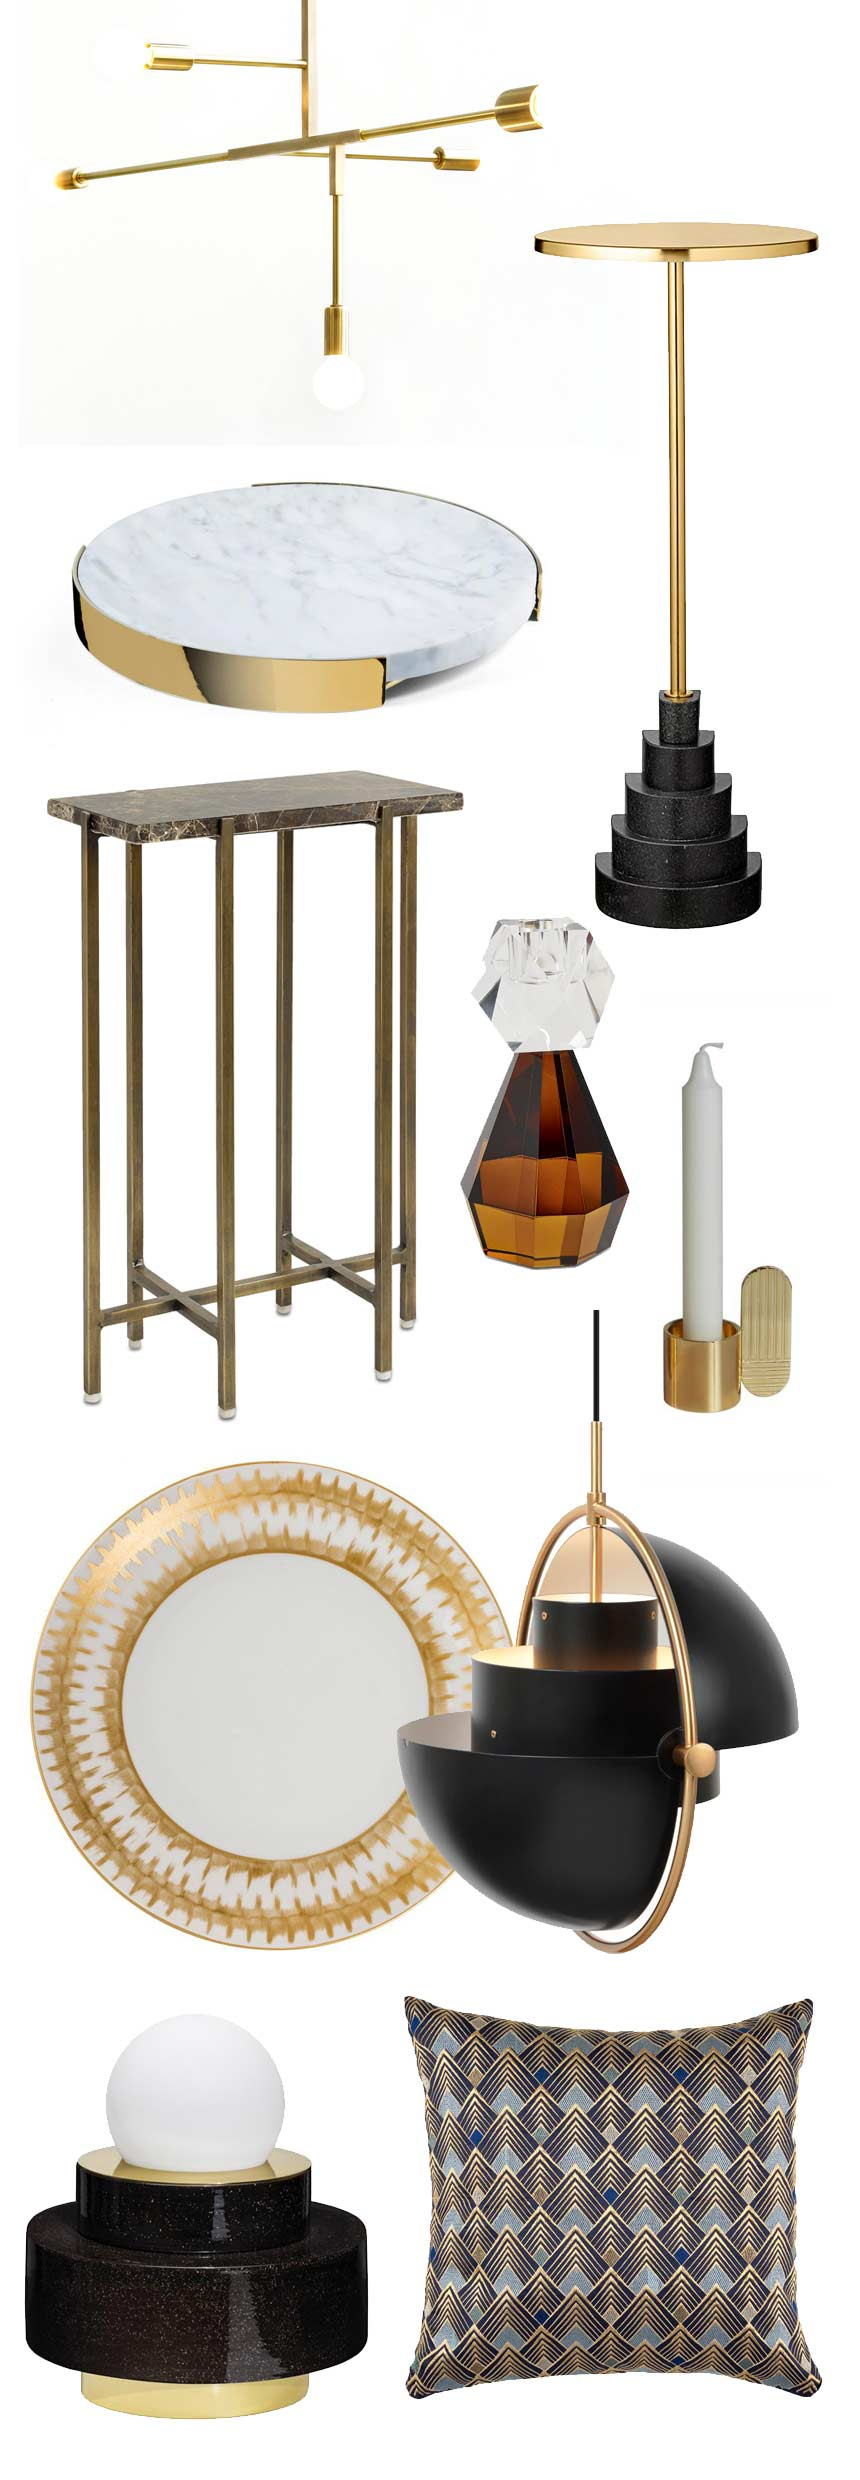 art-deco-idees-shopping-deco-art-deco